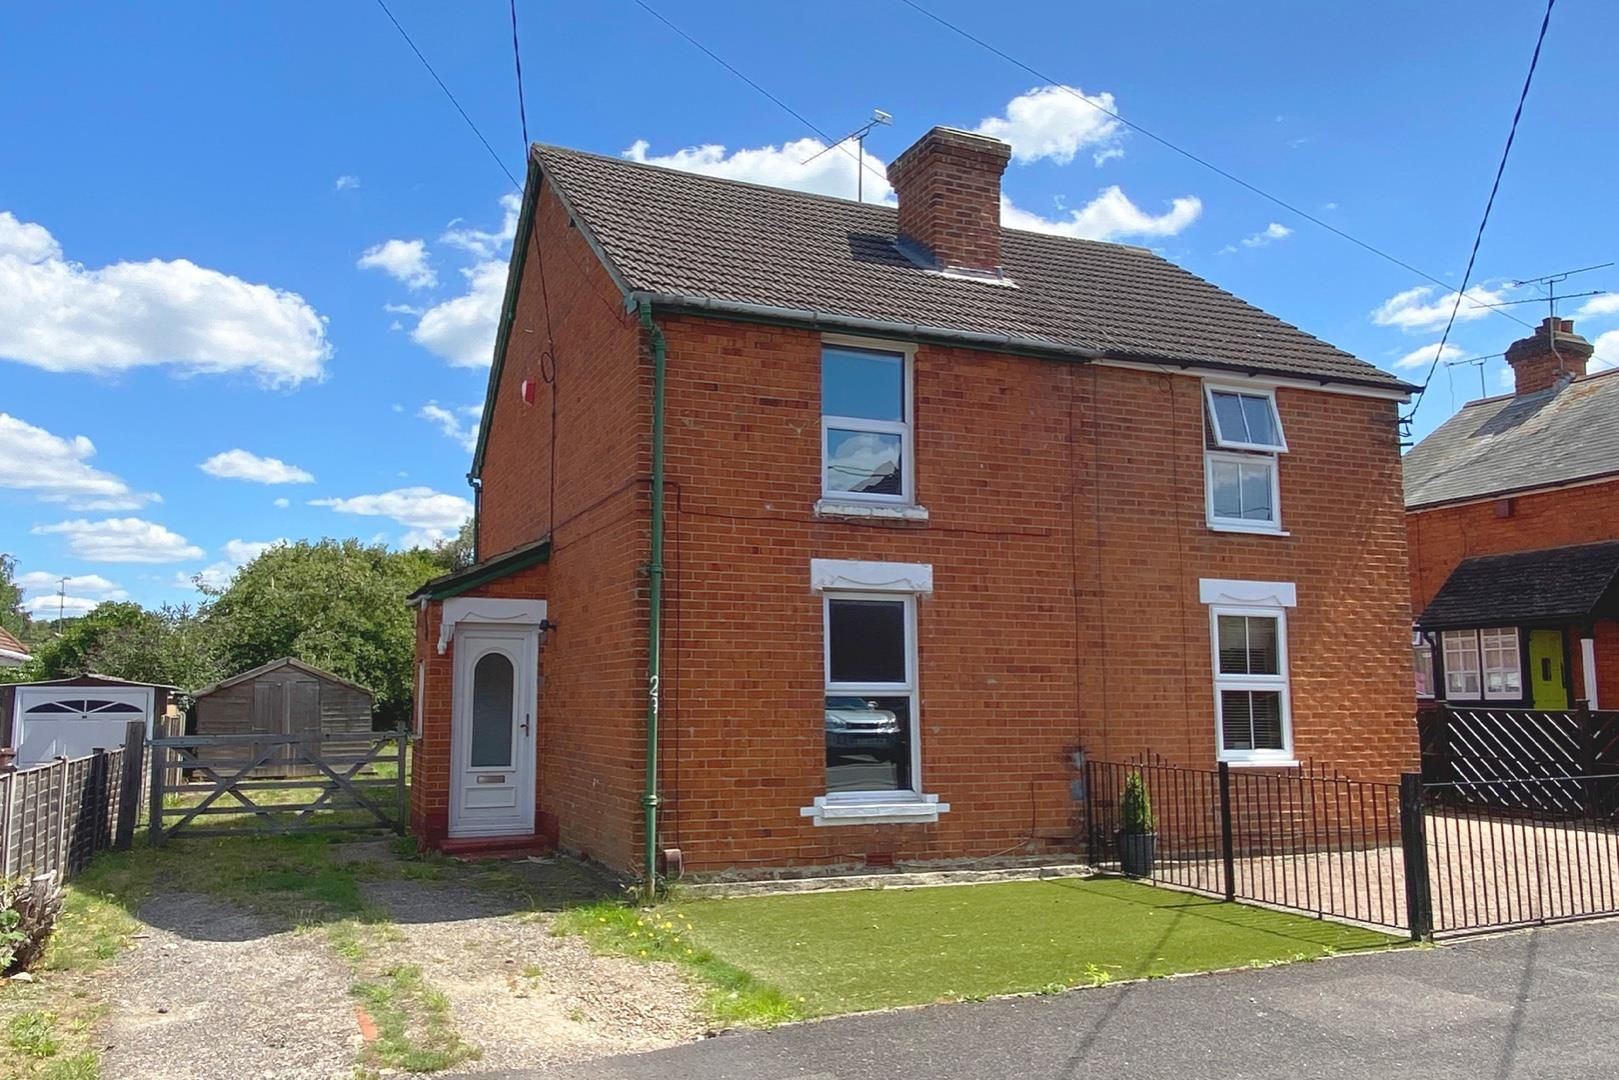 2 bed semi-detached for sale 1